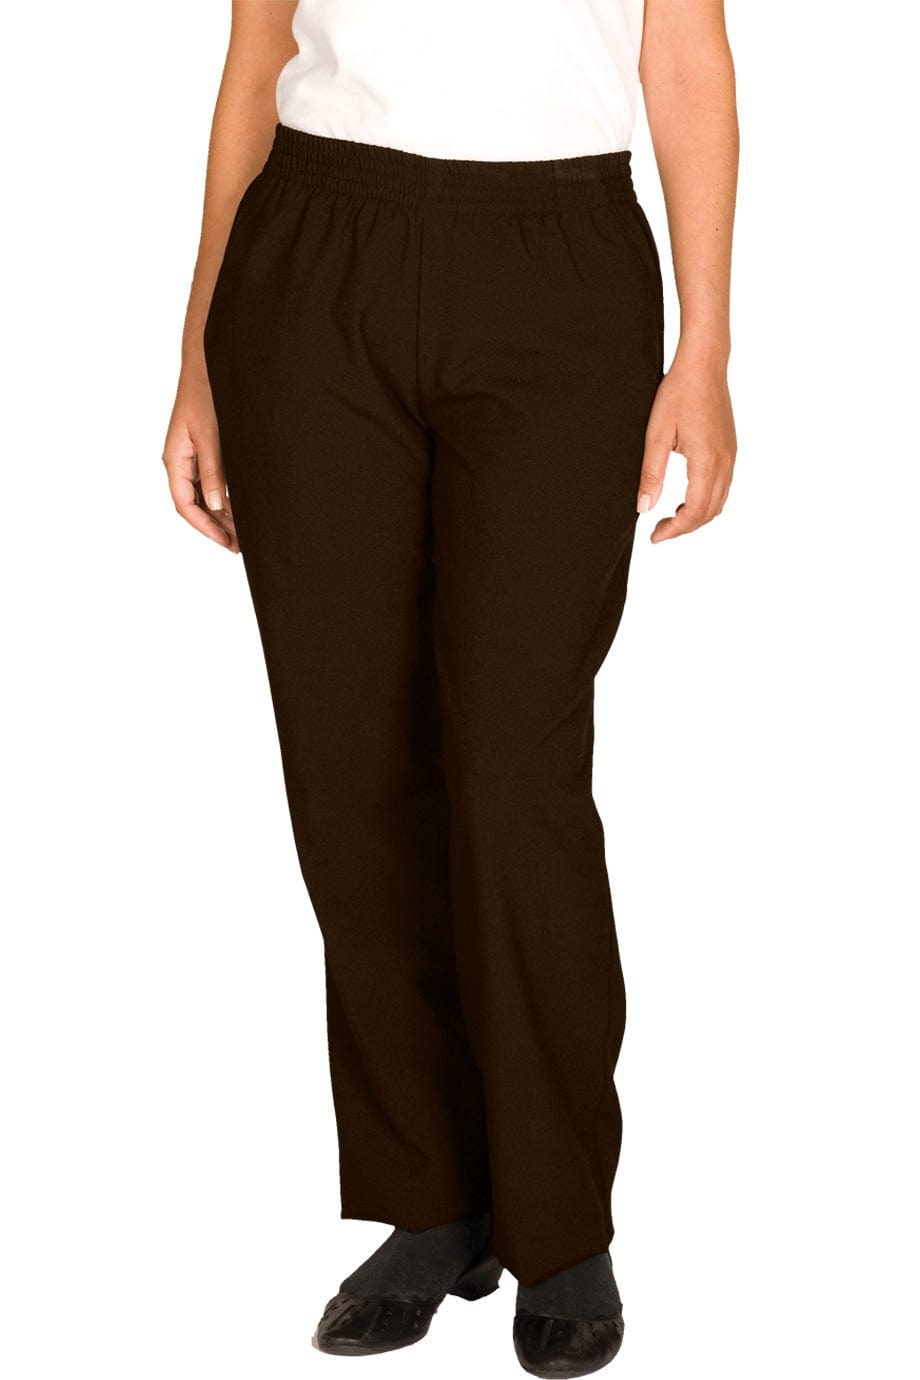 Brown Polyester Women's Housekeeping Pant